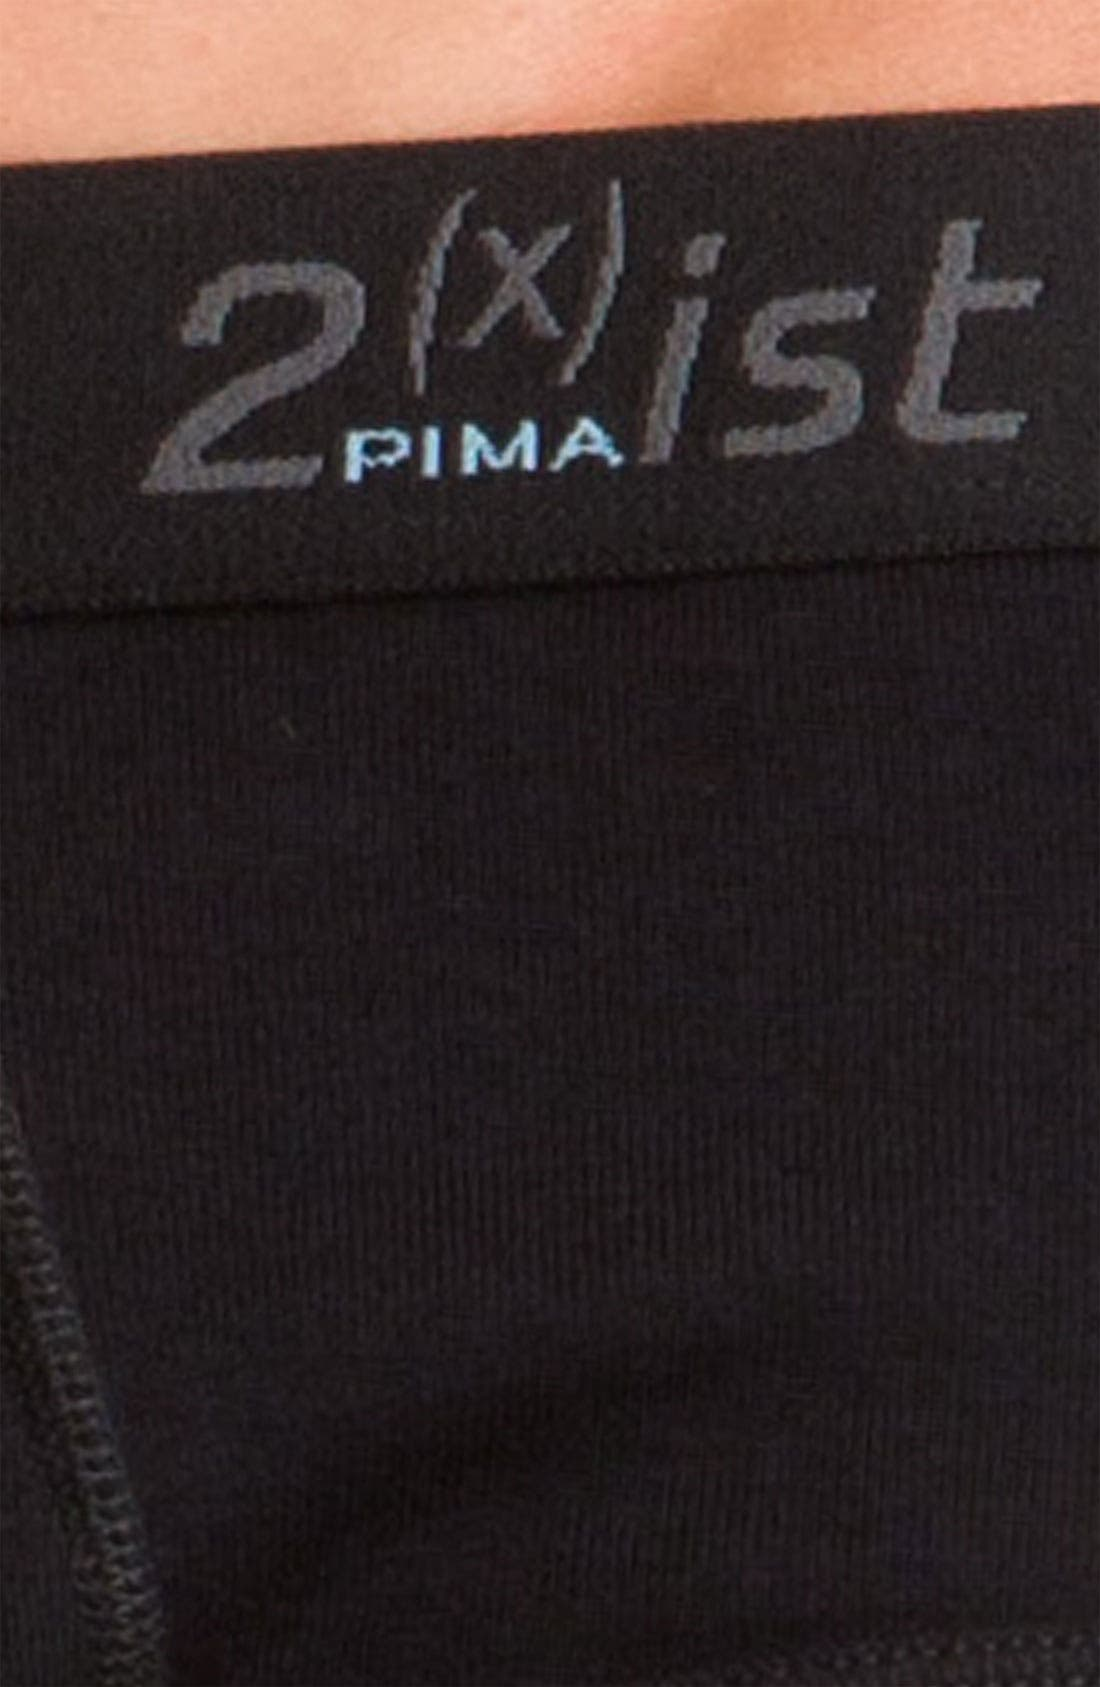 2(X)IST,                             Pima Cotton Briefs,                             Alternate thumbnail 2, color,                             001